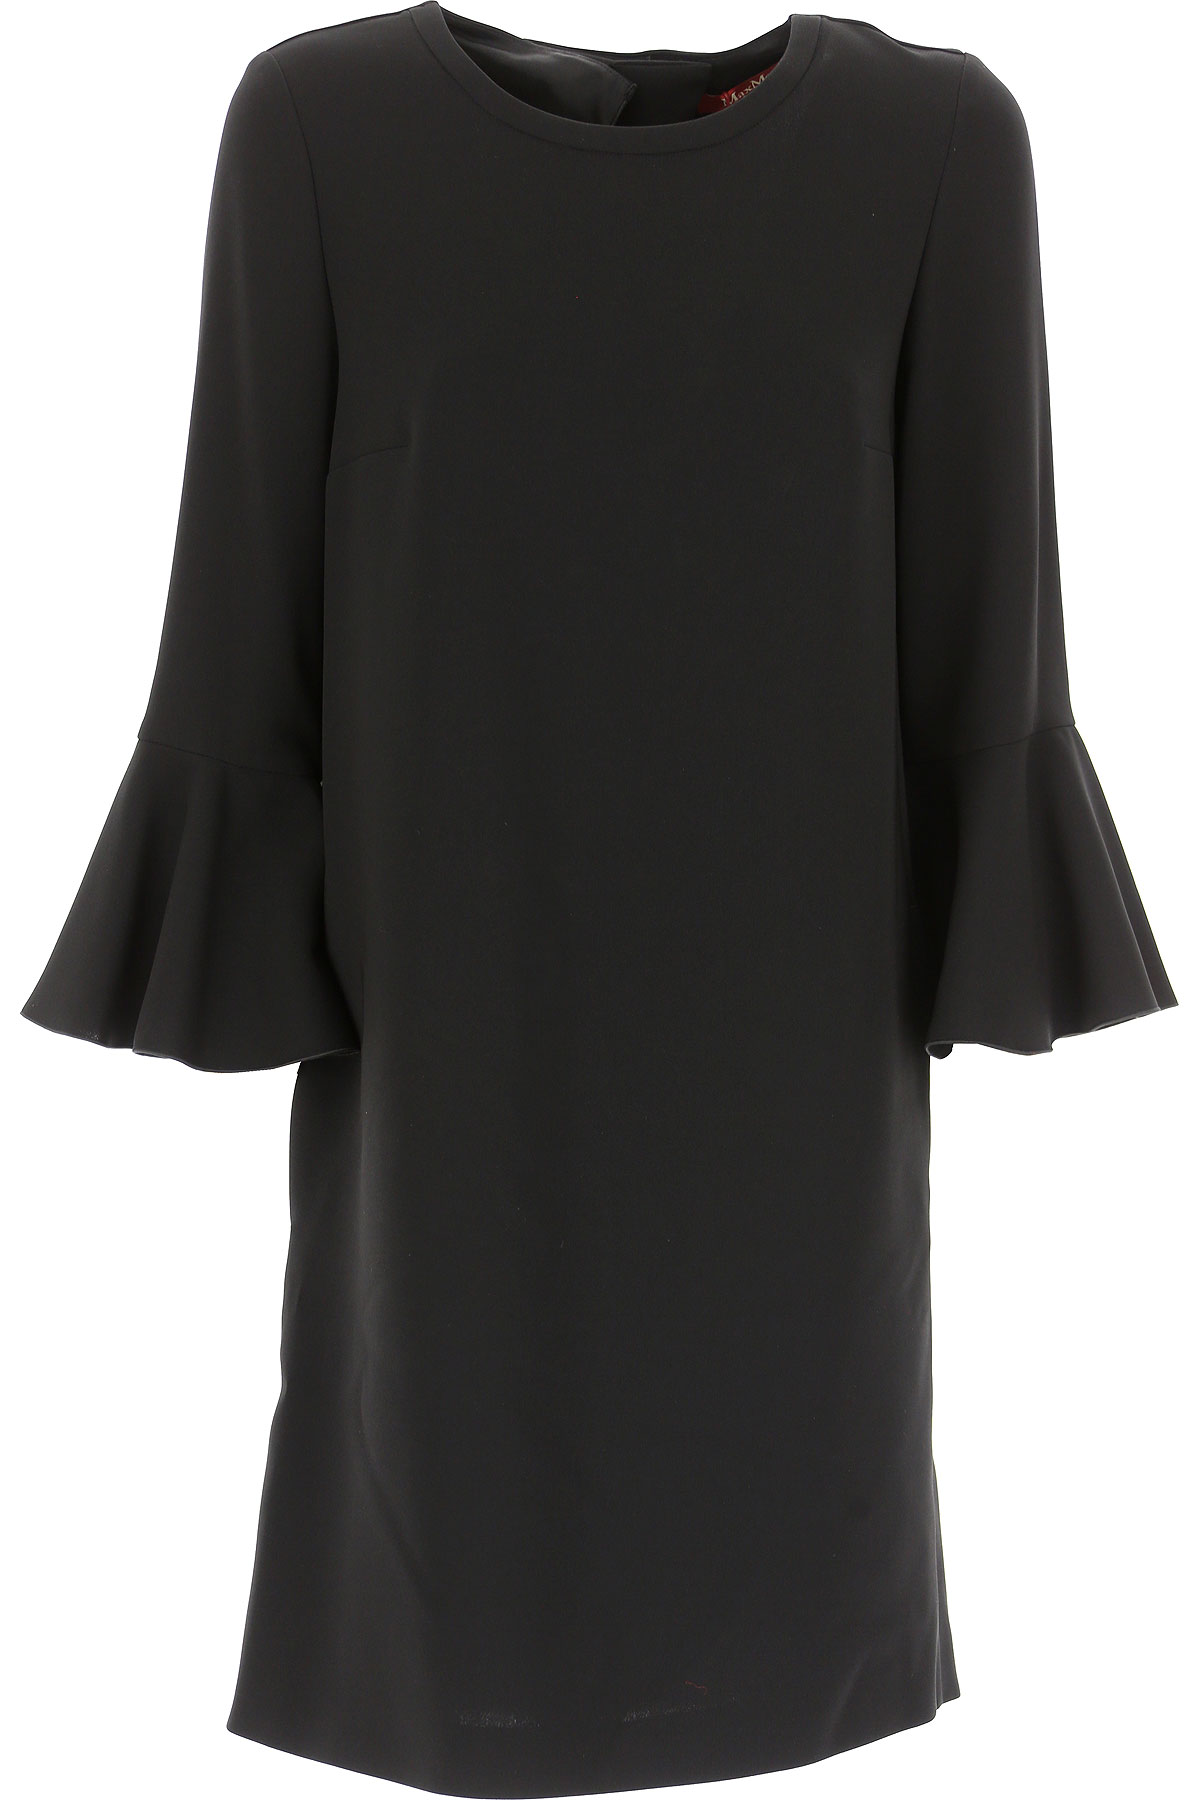 Image of Weekend by Max Mara Dress for Women, Evening Cocktail Party, Black, Triacetate, 2017, 2